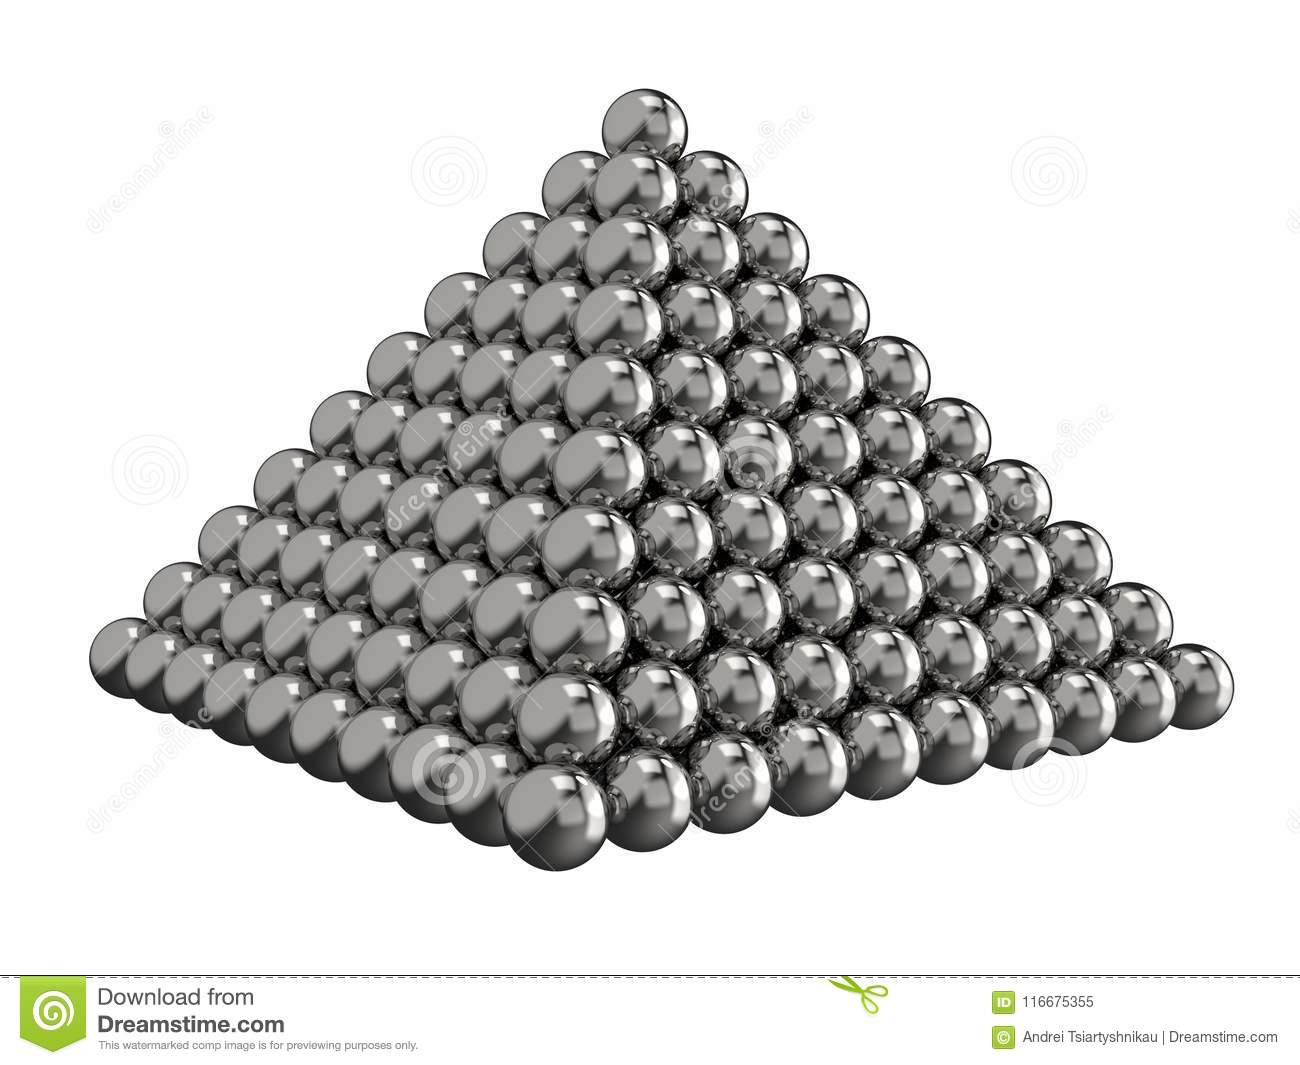 Pyramid of steel balls on a white background. Toy for children. 3D rendering.